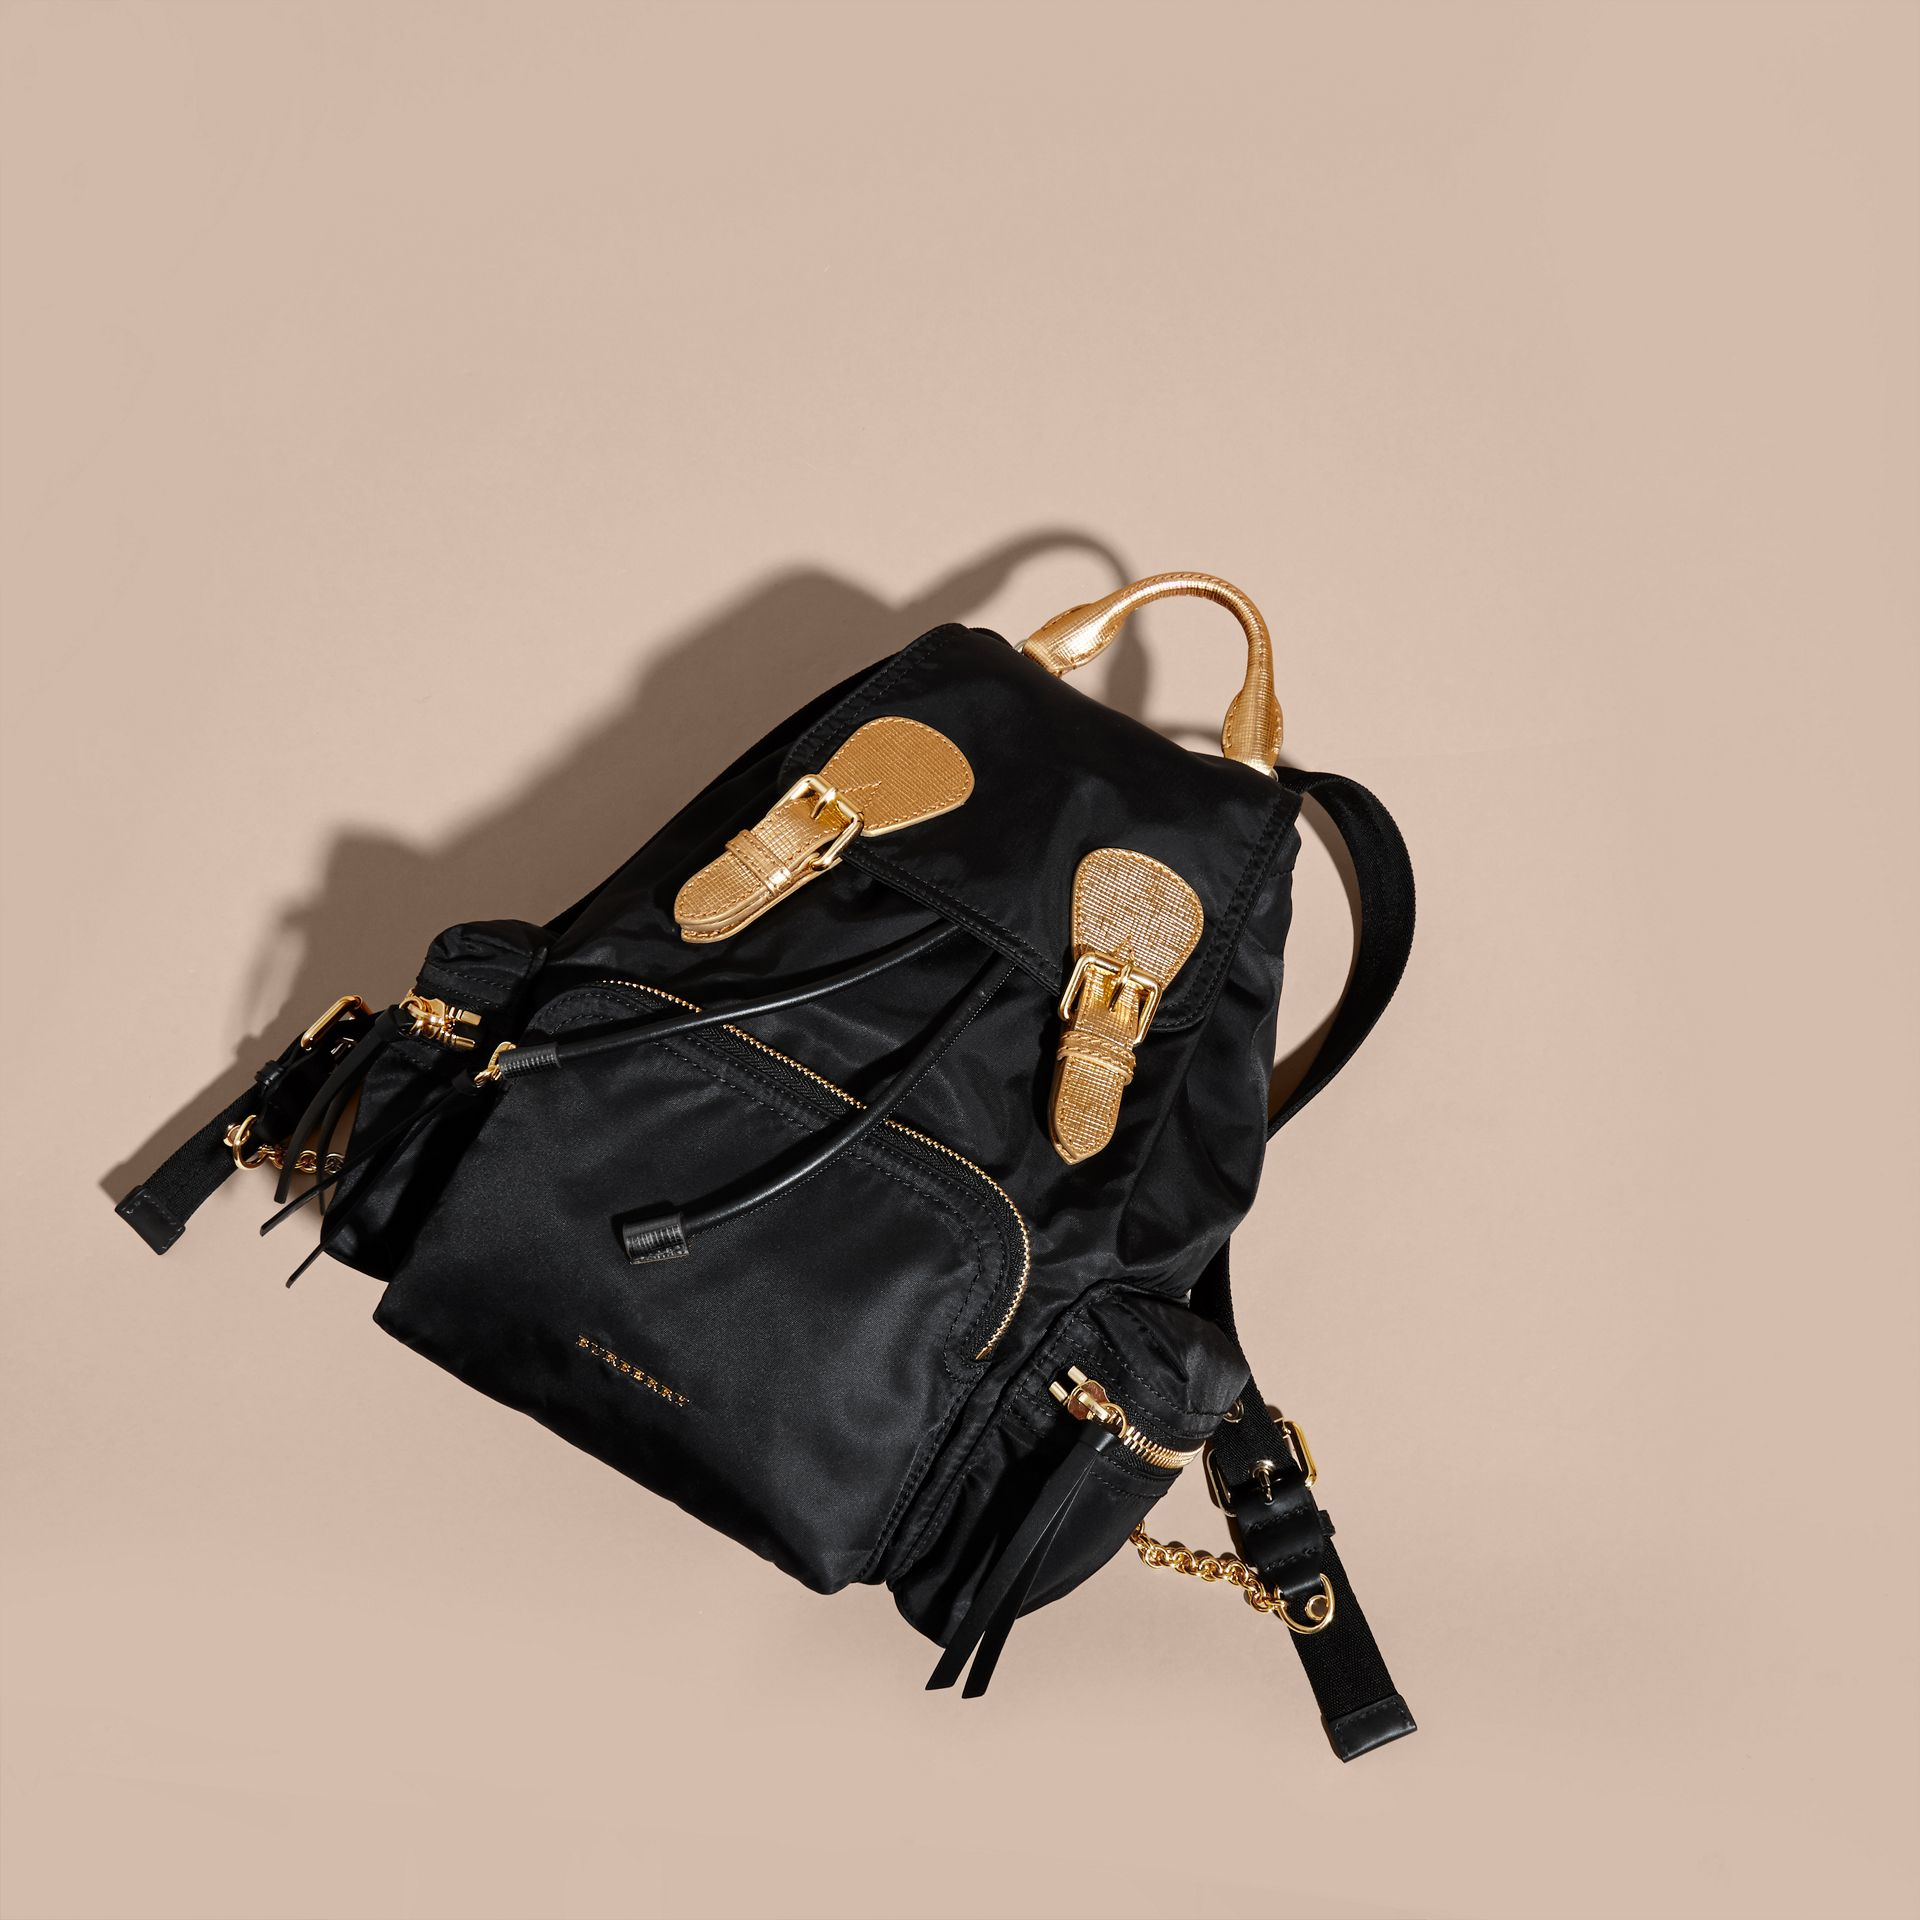 Black/gold The Medium Rucksack in Two-tone Nylon and Leather Black/gold - gallery image 7